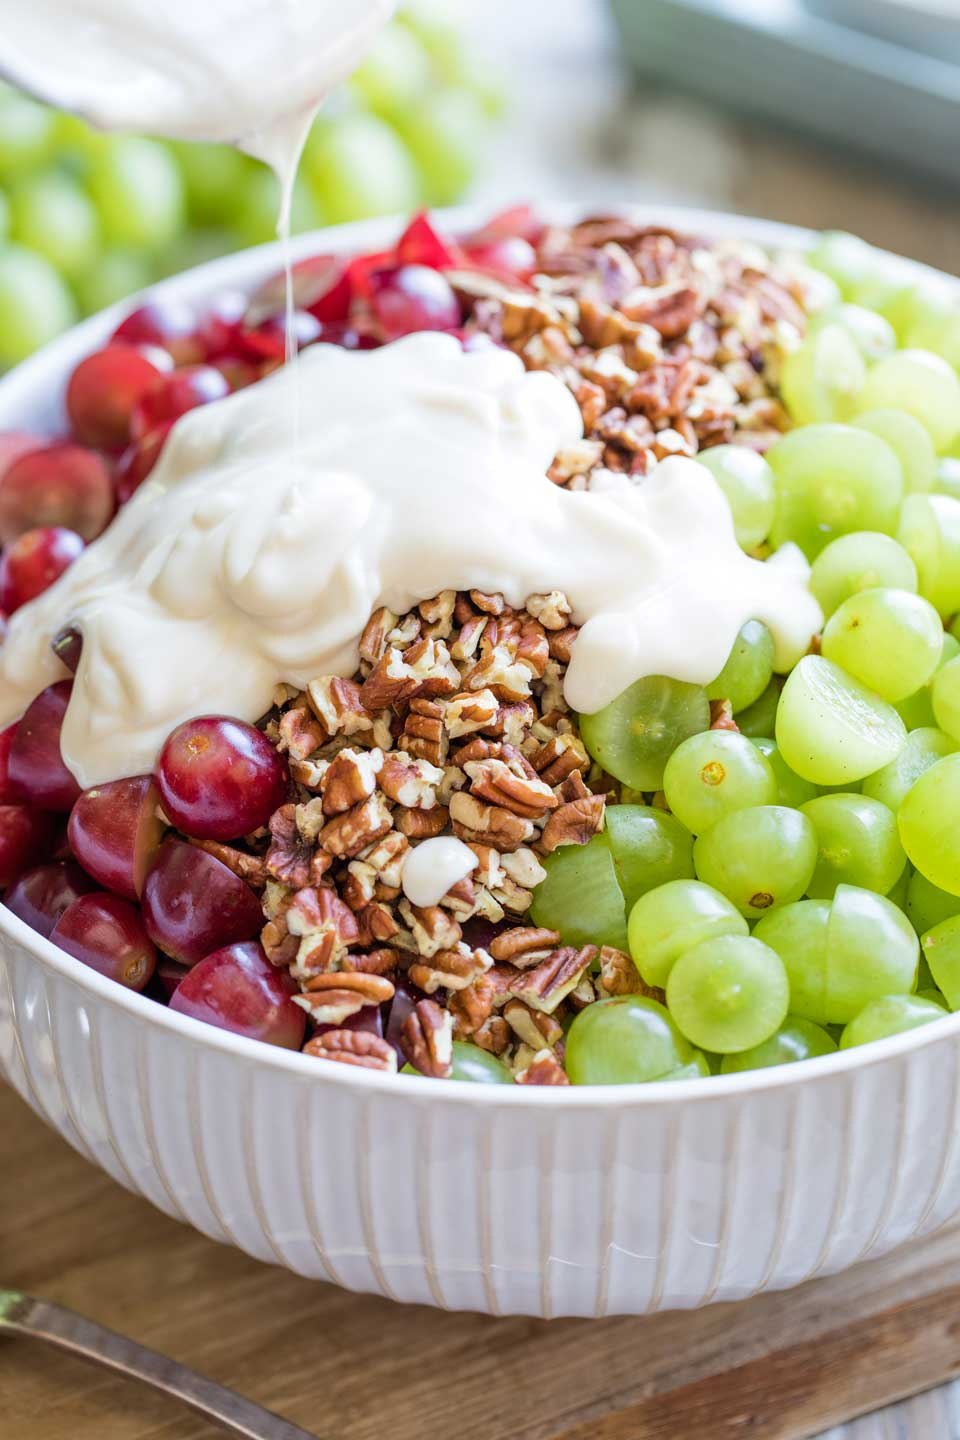 large serving bowl with red grapes to the left, green grapes to the right, and pecans down the middle - with cream cheese dressing being poured on top